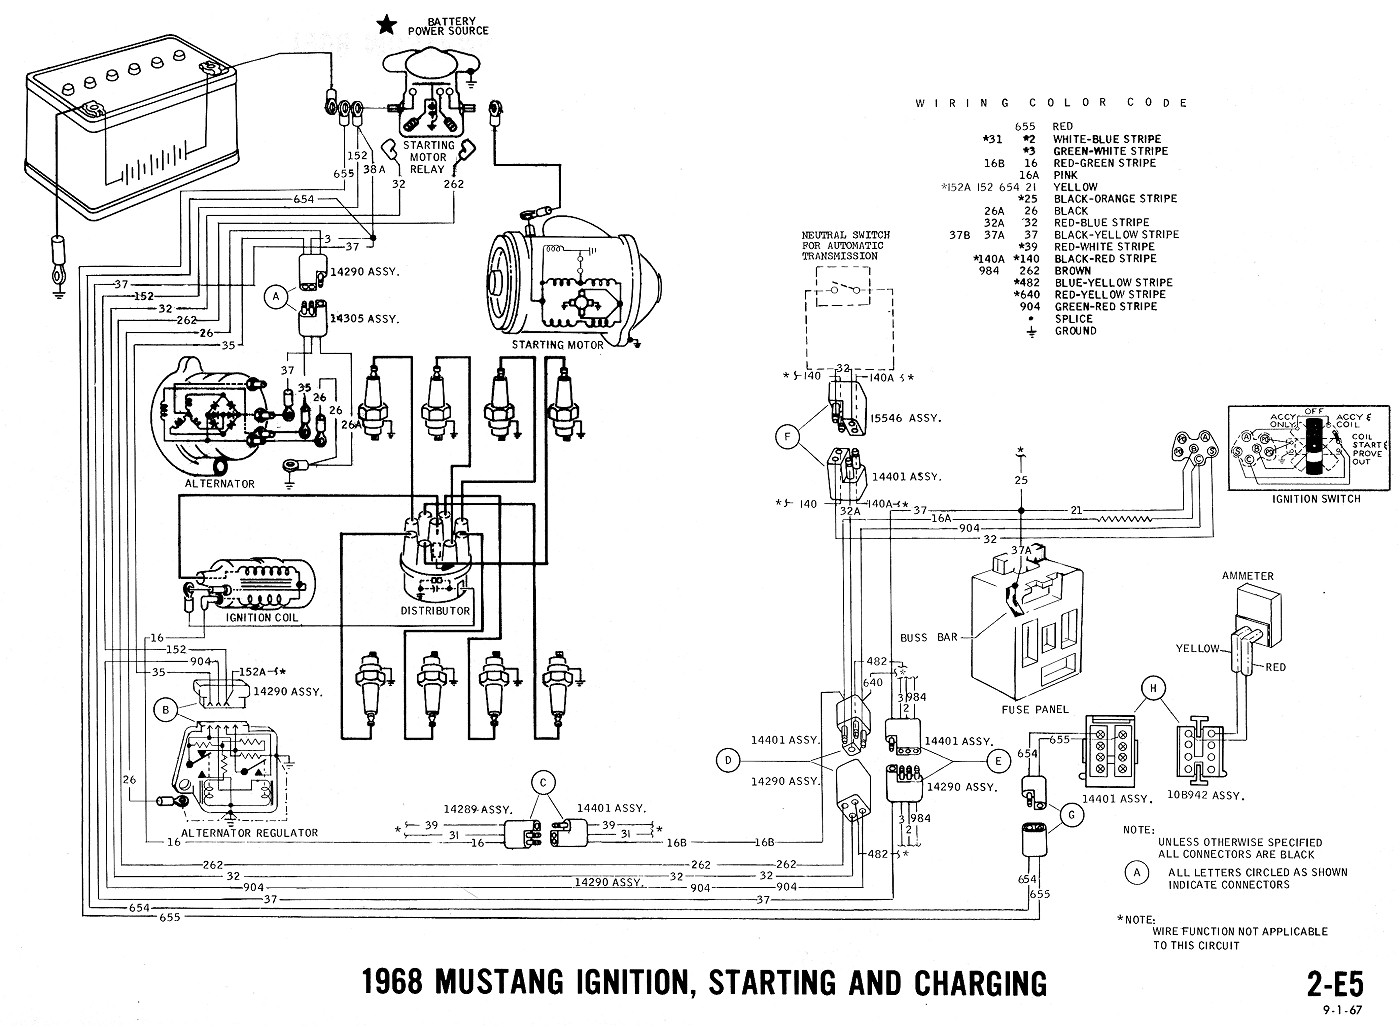 4 Cylinder Wisconsin Engine Wiring Diagram - Wiring Diagram Of Window Type  Air Conditioner bmw-ignition.au-delice-limousin.fr | Wisconsin Engine Wiring Diagram |  | Bege Wiring Diagram - Bege Wiring Diagram Full Edition